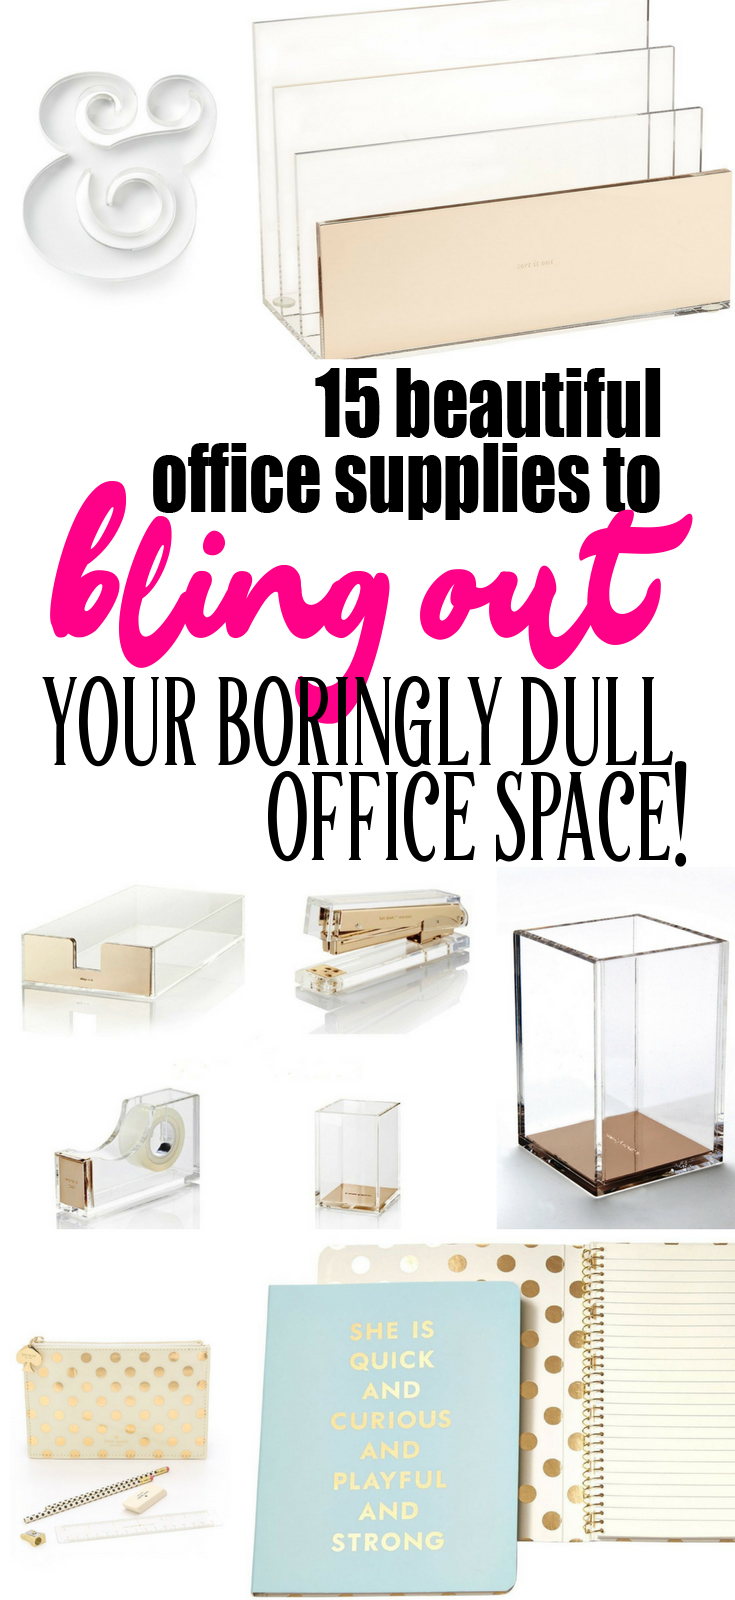 15 Beautiful Office Supplies to Bling Out Your Boringly Dull Workspace (especially for Uber Fans of Kate Spade!) | I'm such a sucker for beautiful things and, when it comes to the home office, I'm a LOLLIPOP for the office supply eye candy. There is nothing that makes me happier when I sit down to talk to you than having my gold stapler and tape dispenser just smiling back at me while I work. I have a long list of things that I want to jump on and adopt. This list of 15 is just the beginning.